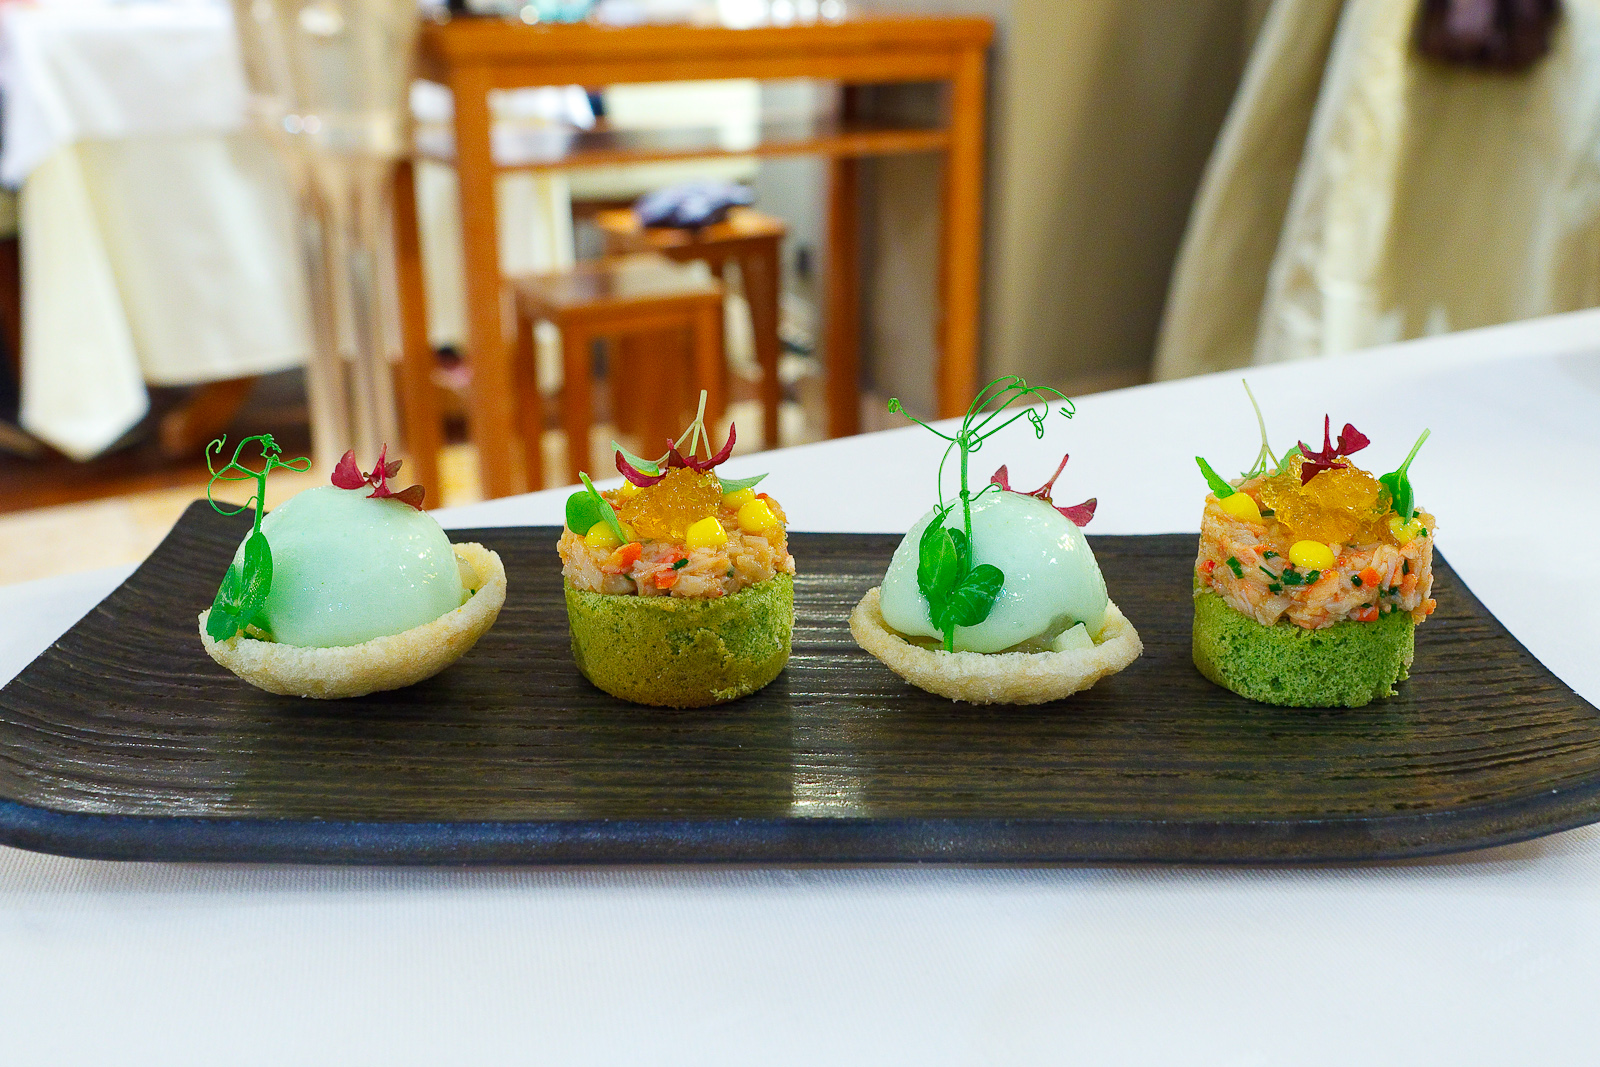 Amuse Bouche 6 and 7: Crab cracker with hamachi, fennel, and apple; Green tea biscuit with lobster and kimizu